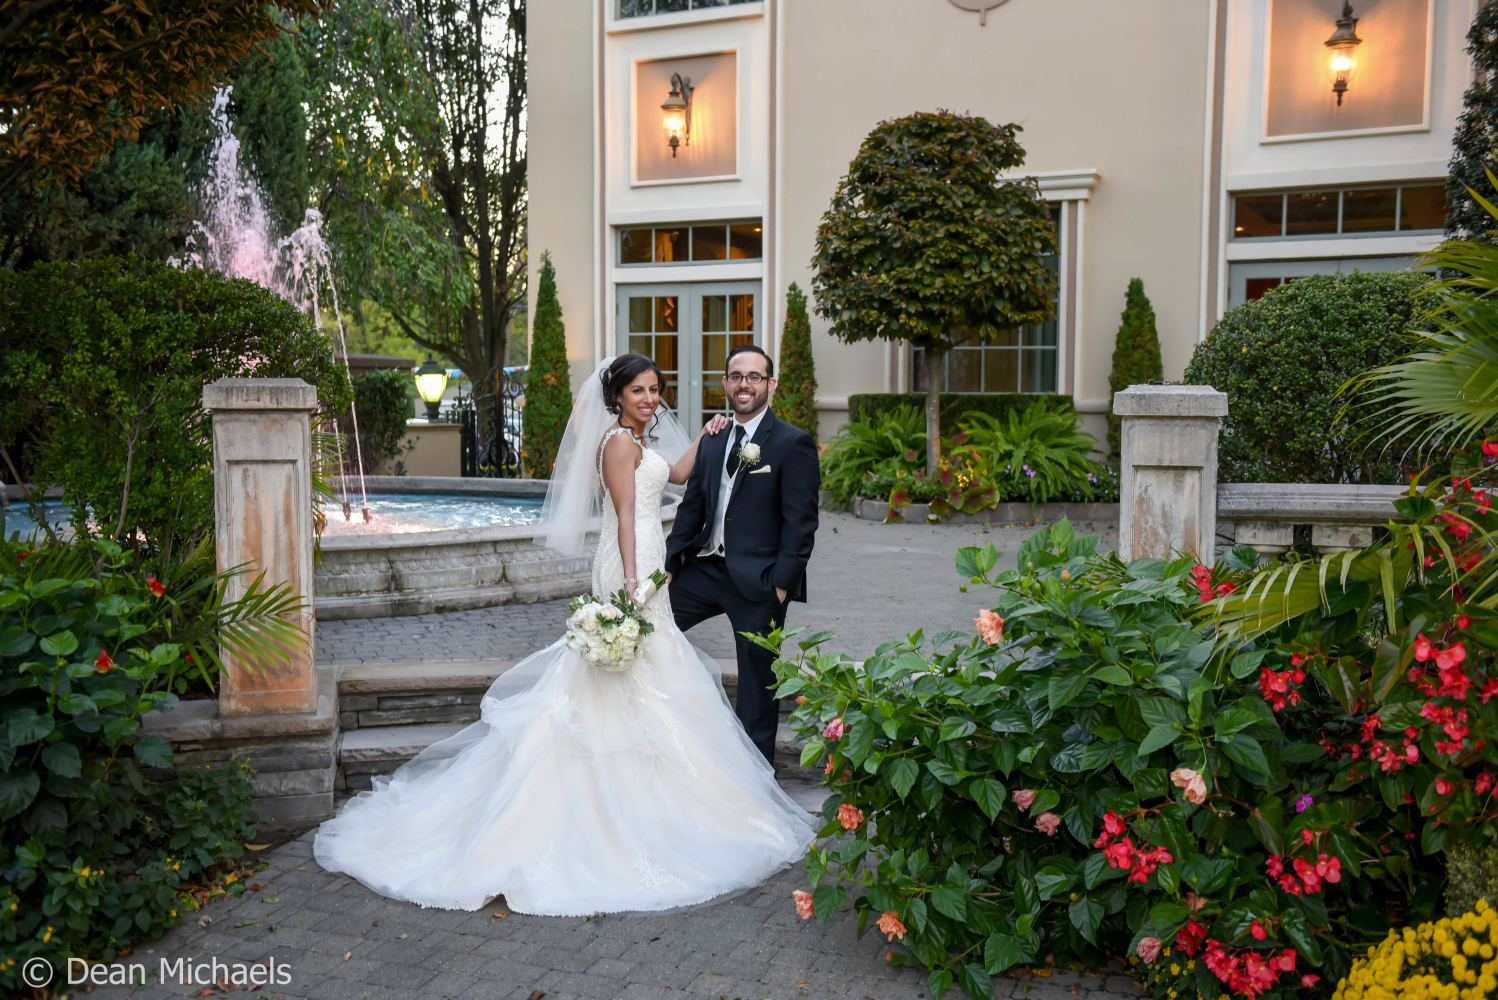 wedding-photographer-gallery-81RTP2D2Q9UV.jpg